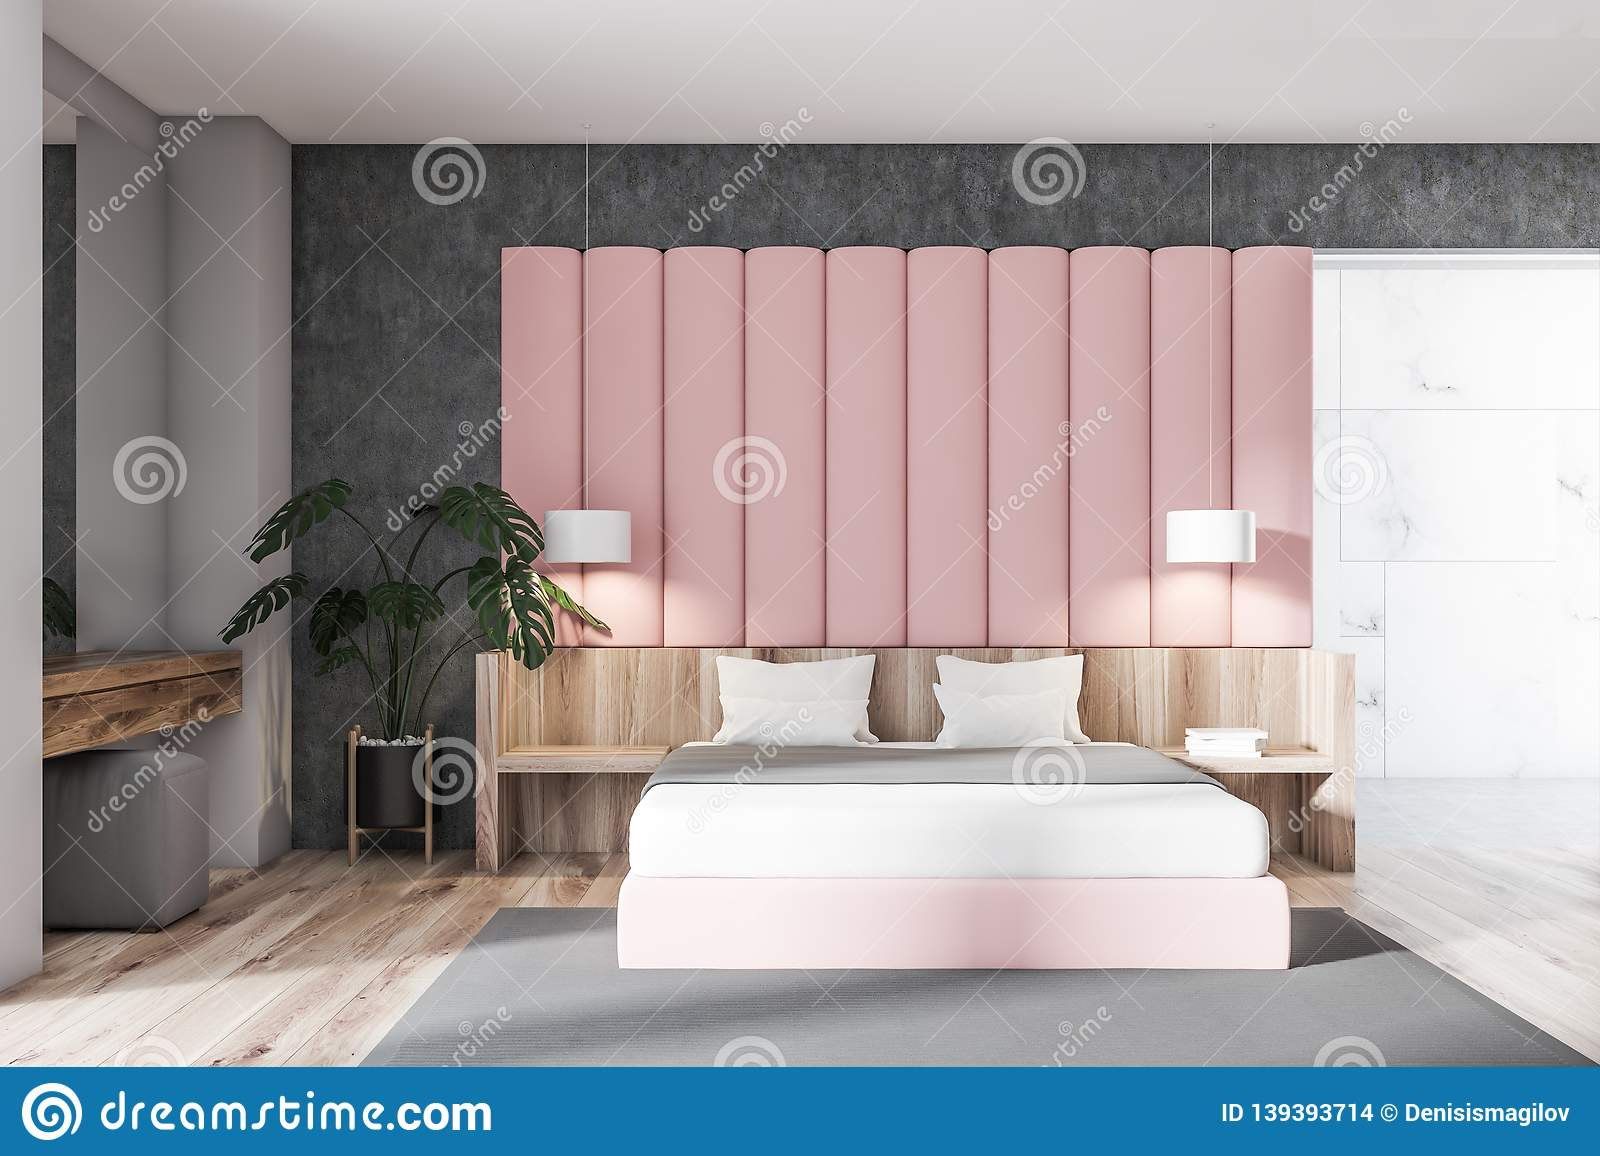 Pink And Gray Bedroom Interior Stock Illustration ...